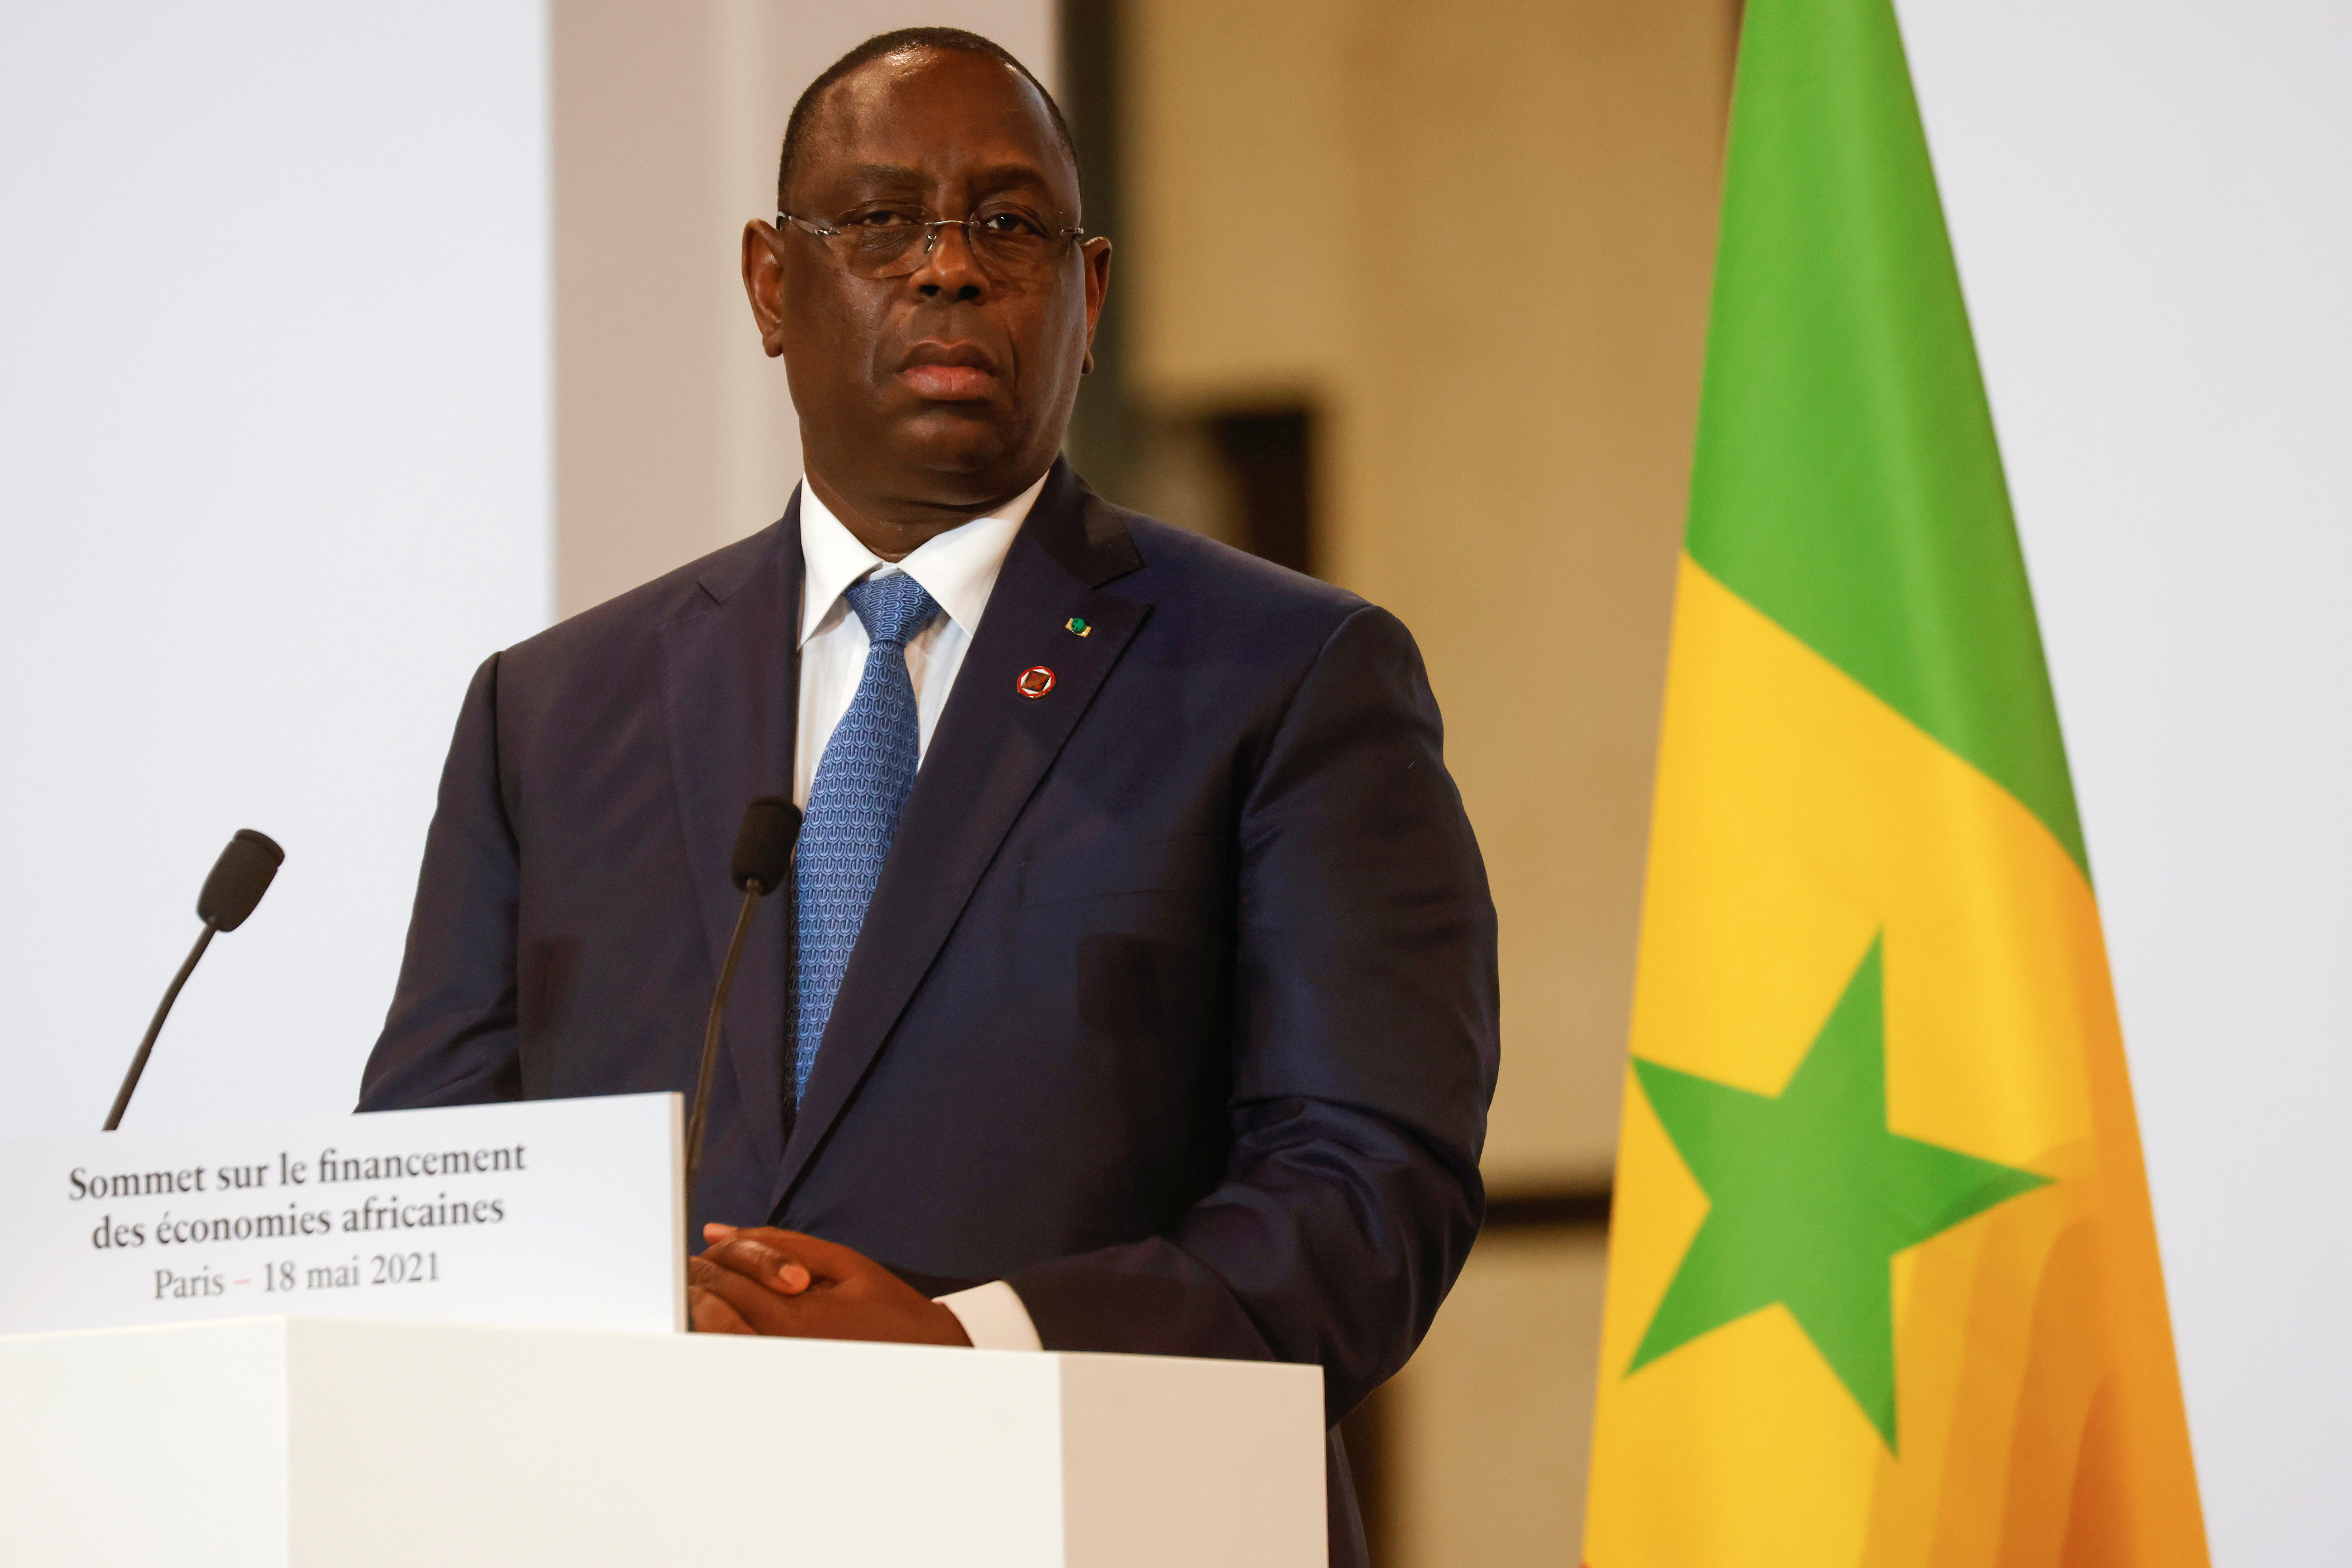 Senegal's President Macky Sall speaks during a joint  news conference at the end of the Summit on the Financing of African Economies in Paris, France May 18, 2021. Ludovic Marin/Pool via REUTERS/File Photo